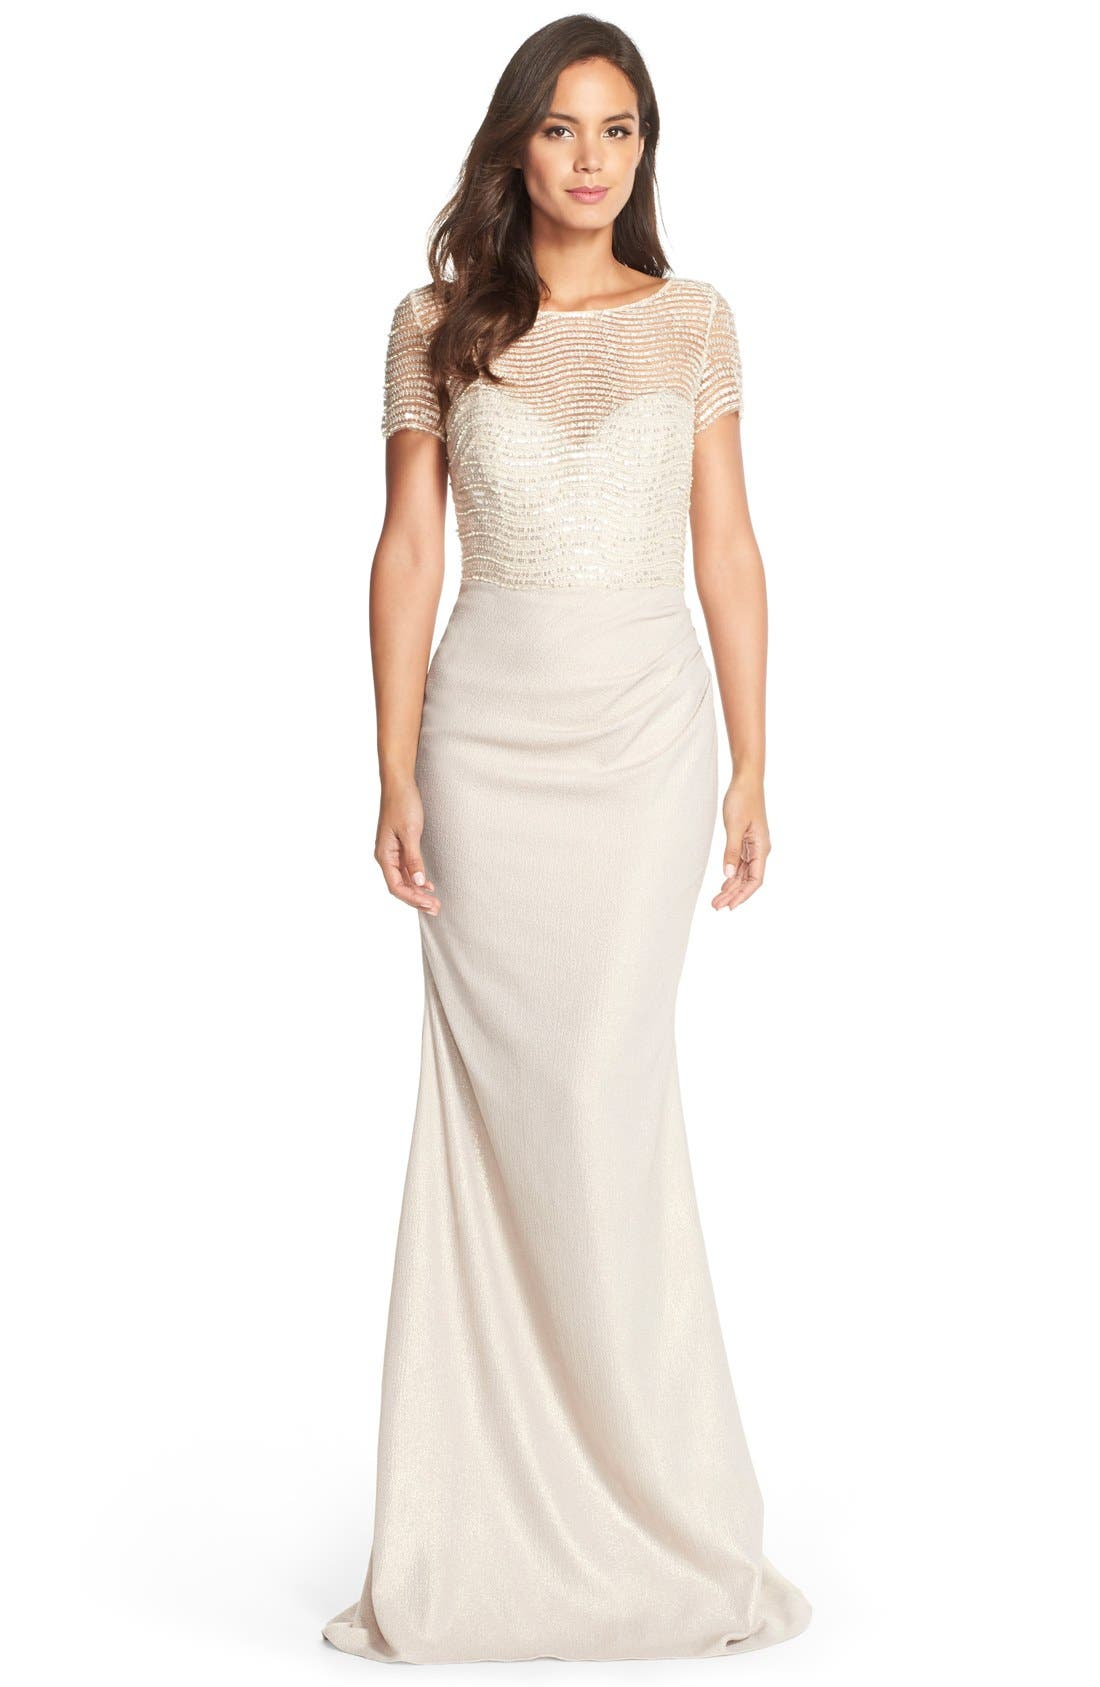 Alternate Image 1 Selected - Badgley Mischka Embellished Illusion Crepe Gown